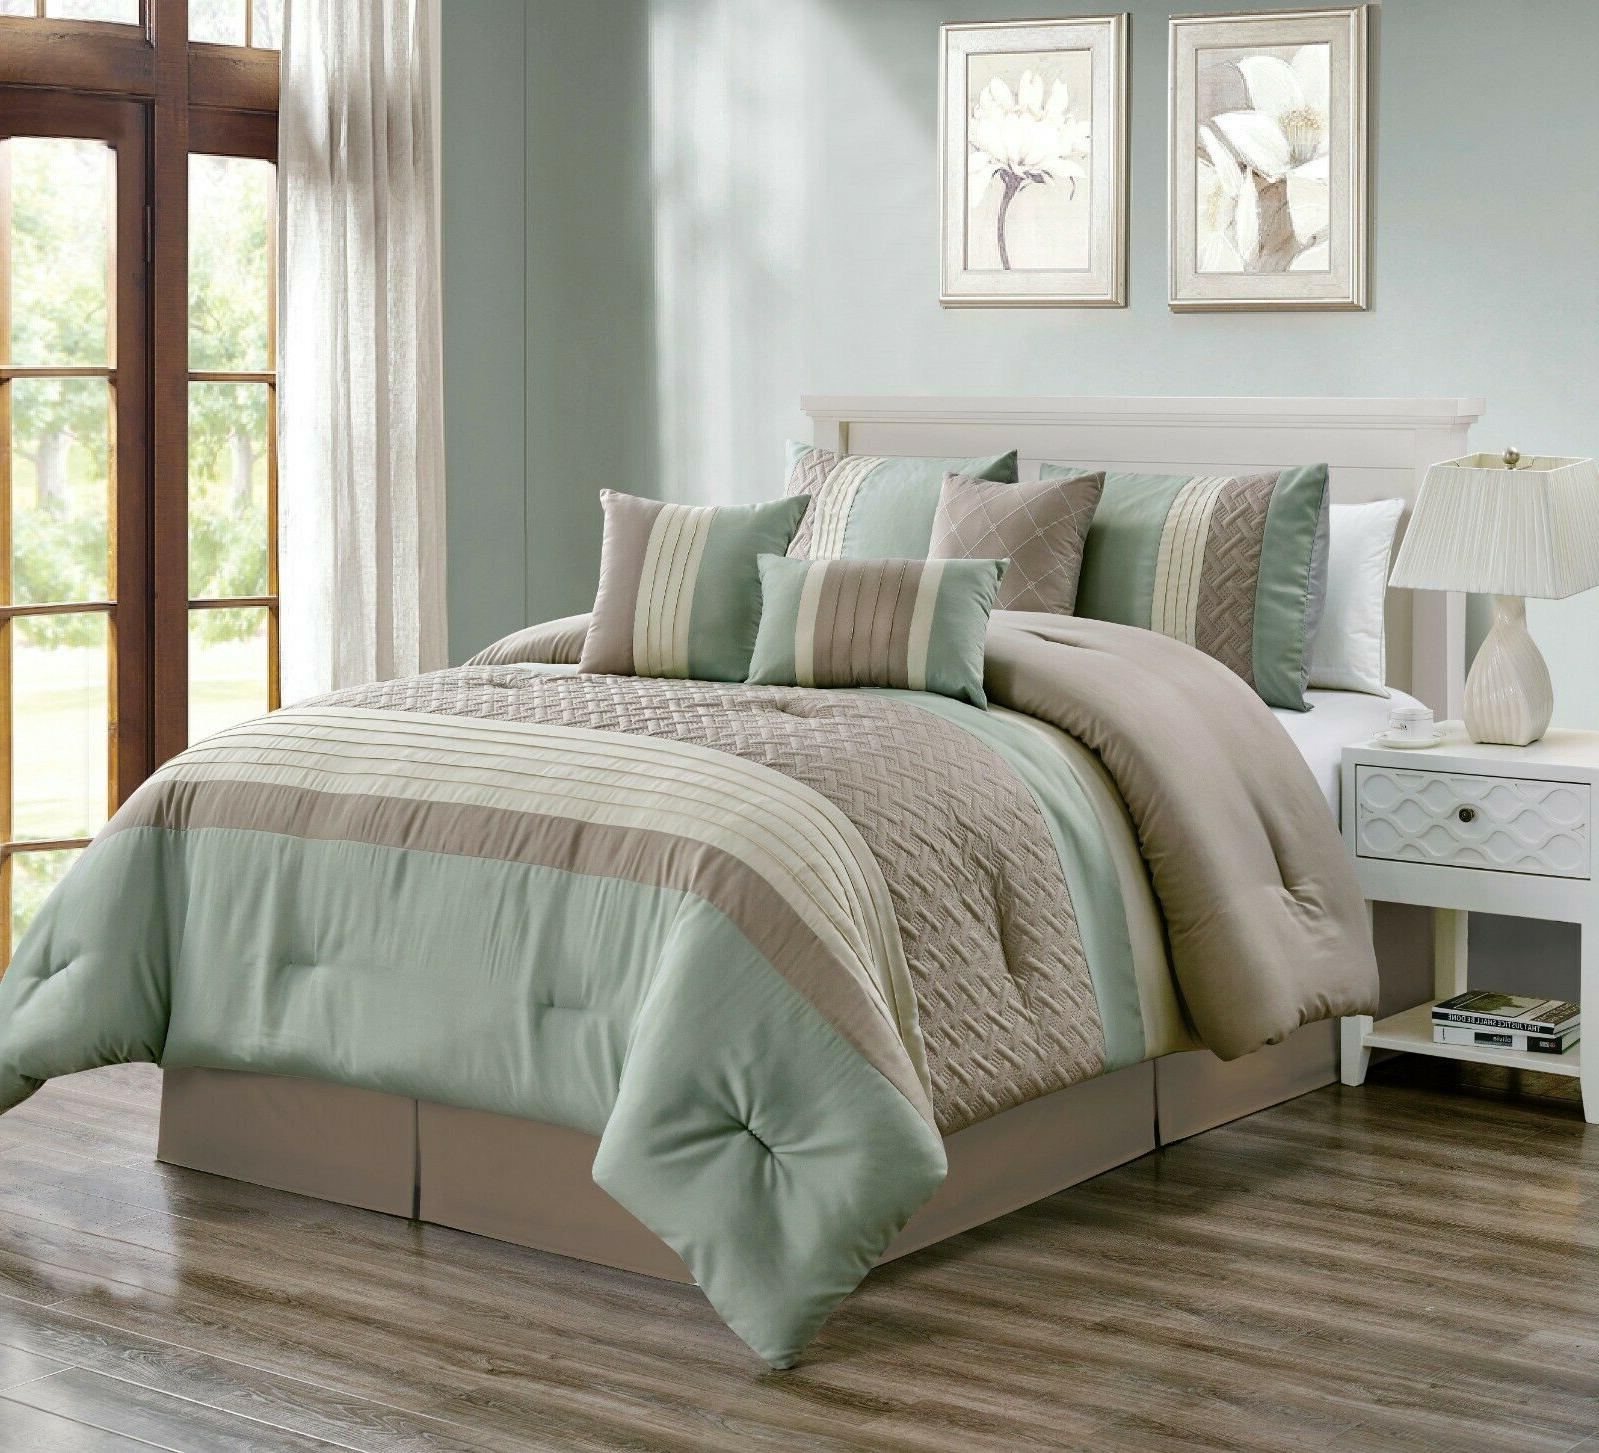 Luxury 7 Piece and Bedding Set